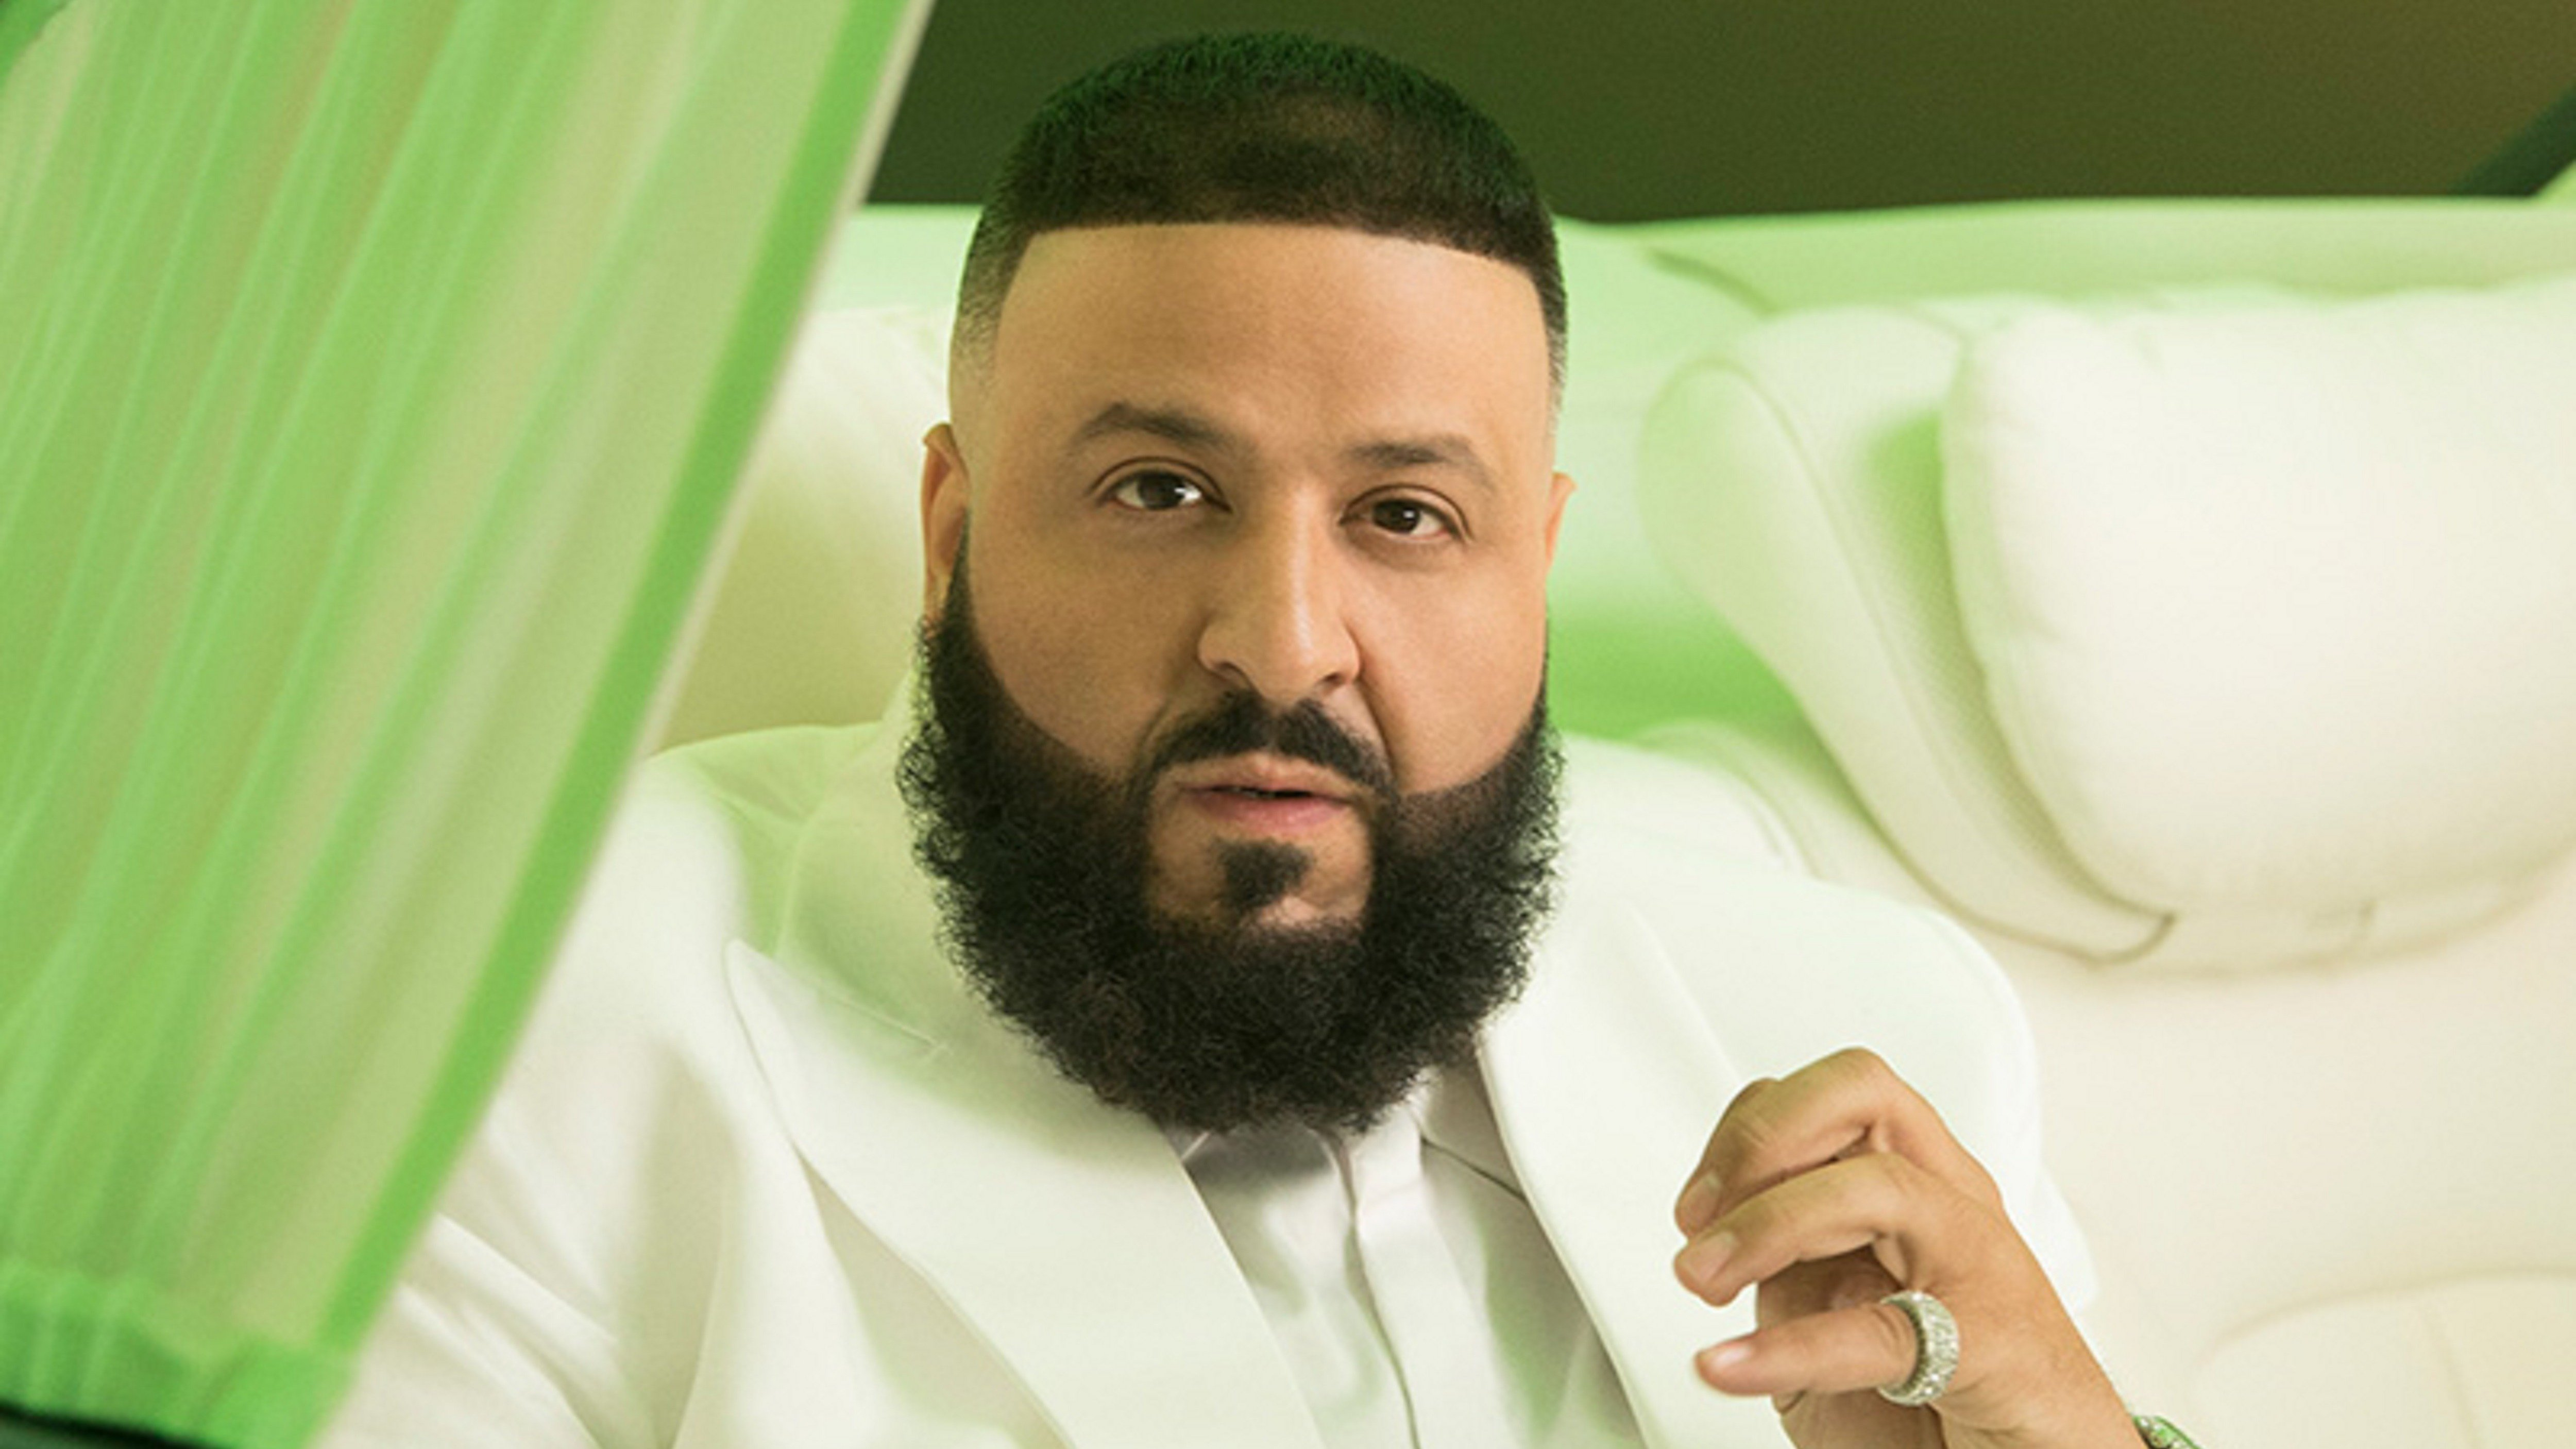 DJ Khaled HD Music 4k Wallpapers Images Backgrounds Photos And